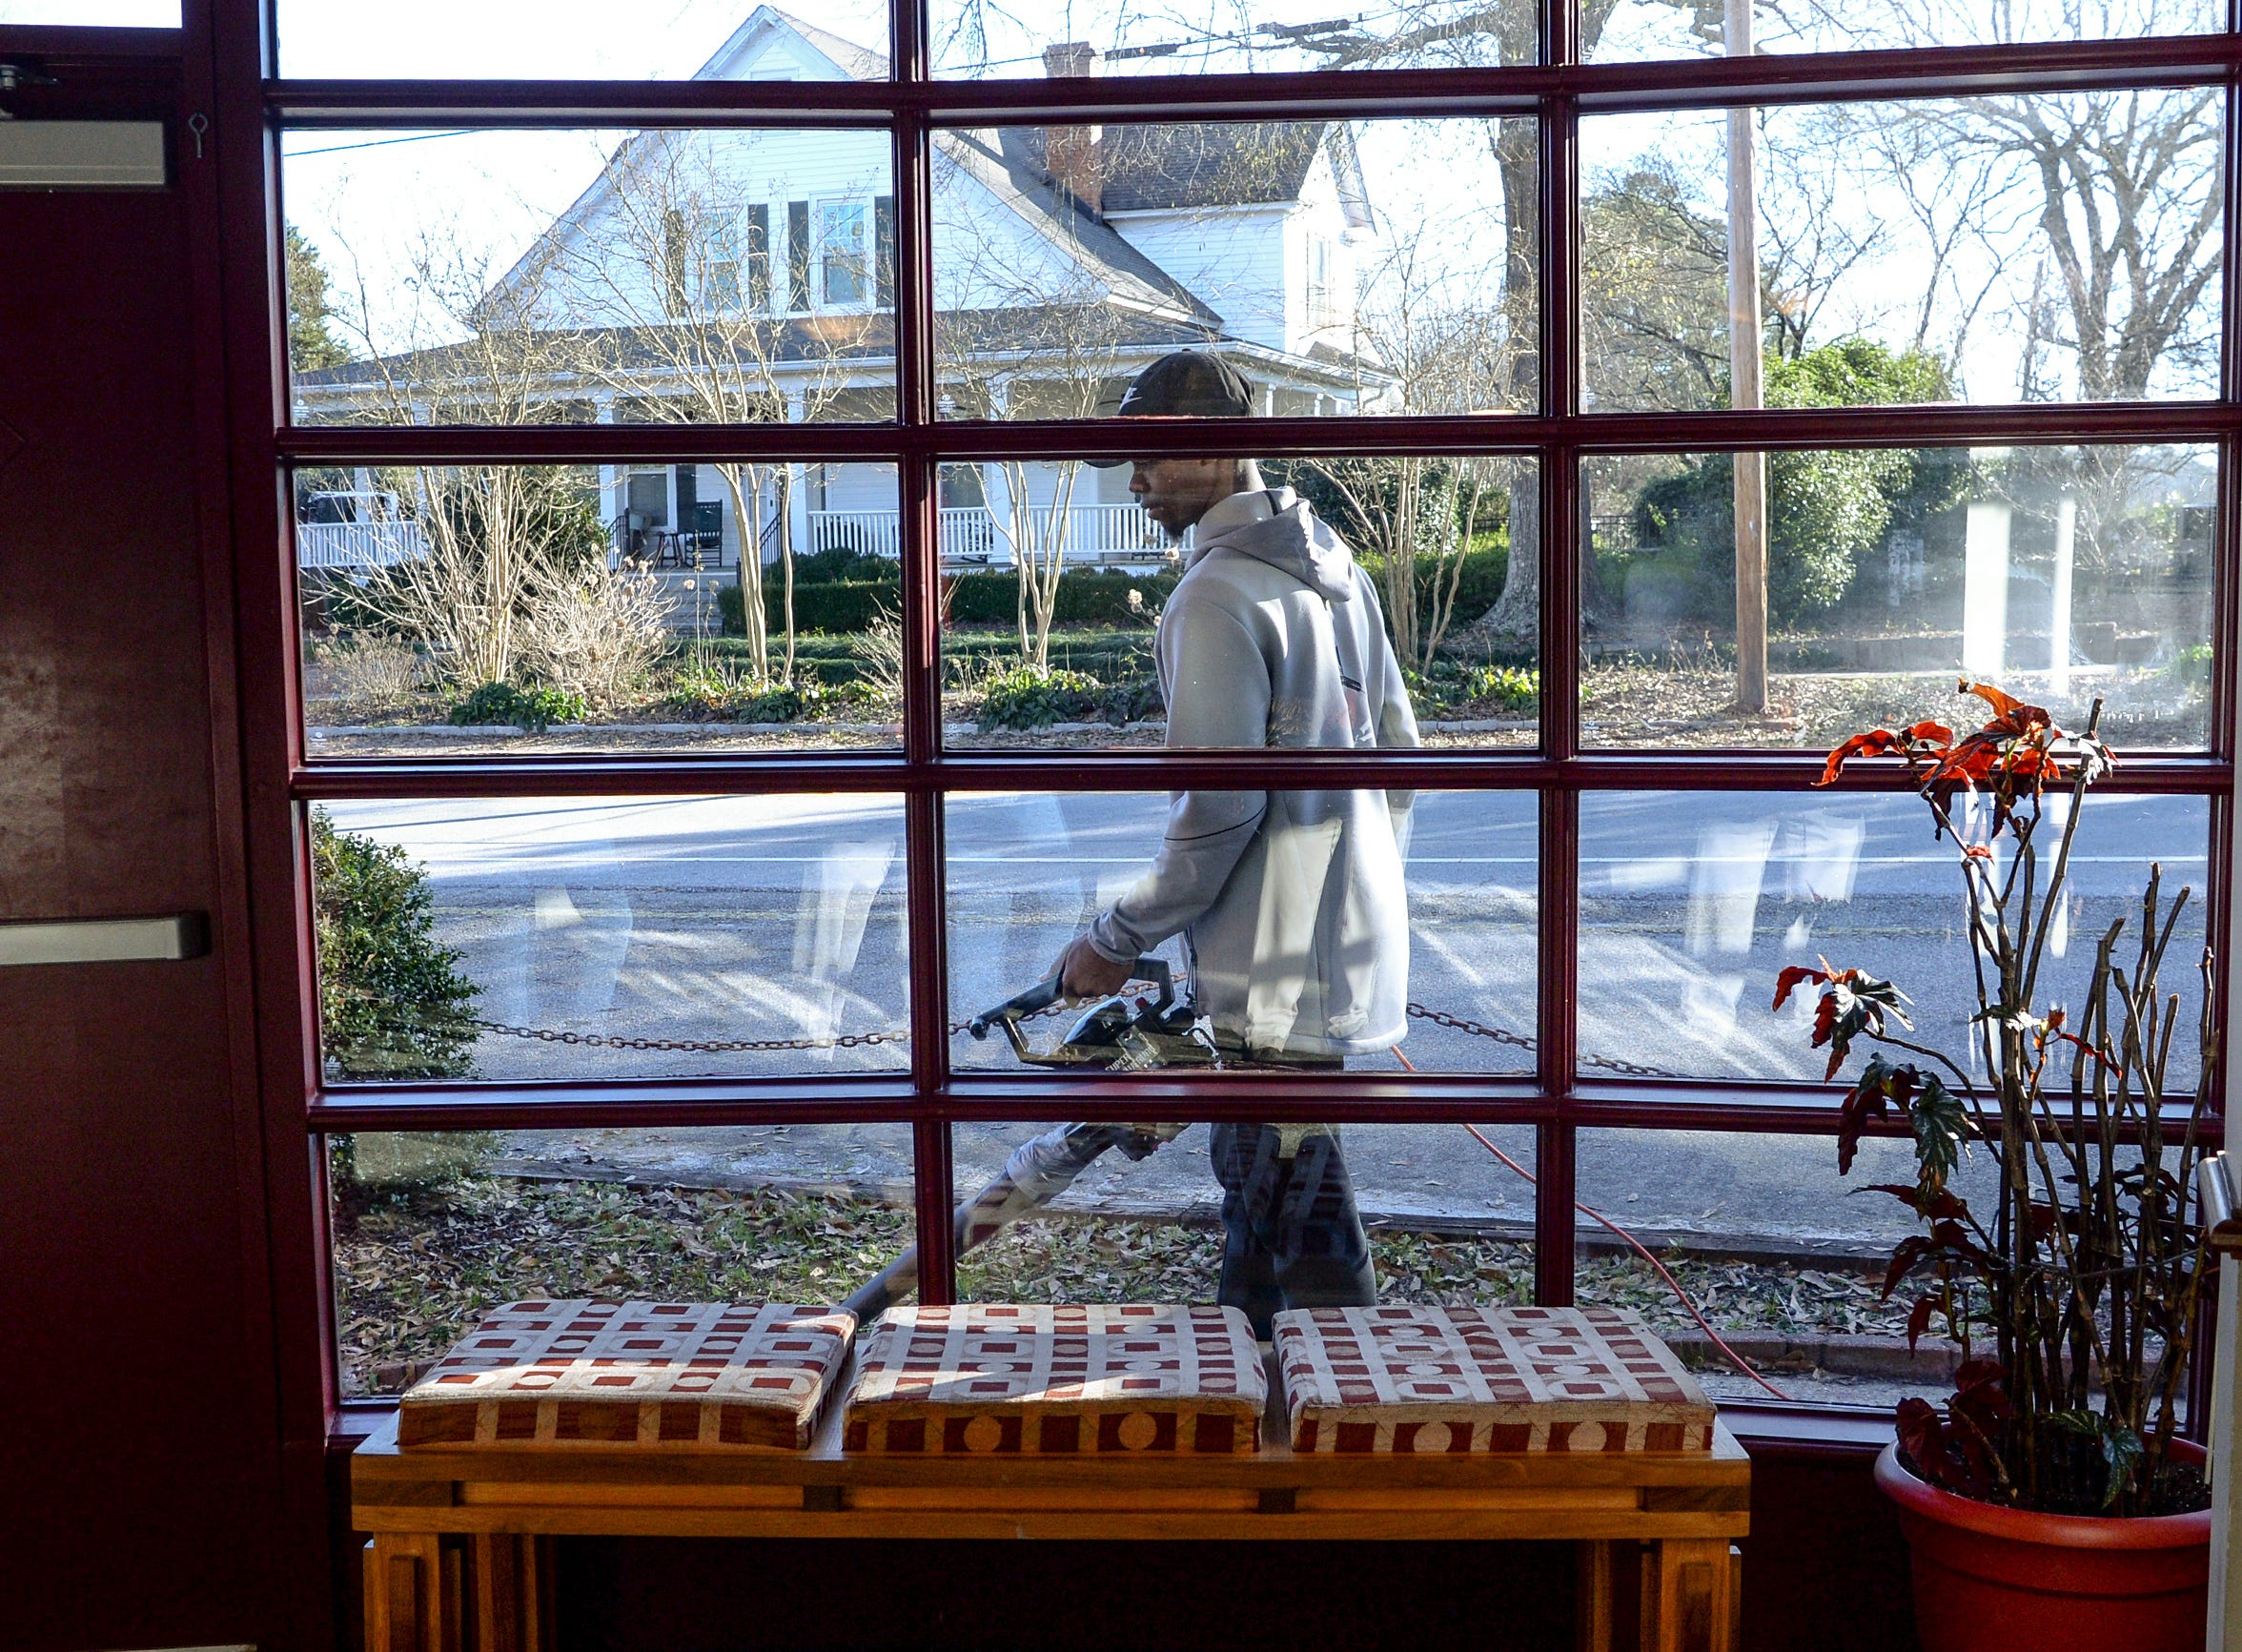 Kendal Pettway of Alpha Phi Alpha fraternity, uses a leaf blower outside Clemson Little Theatre during the Clemson University Martin Luther King, Jr. Service Day in Clemson January 21, 2019.